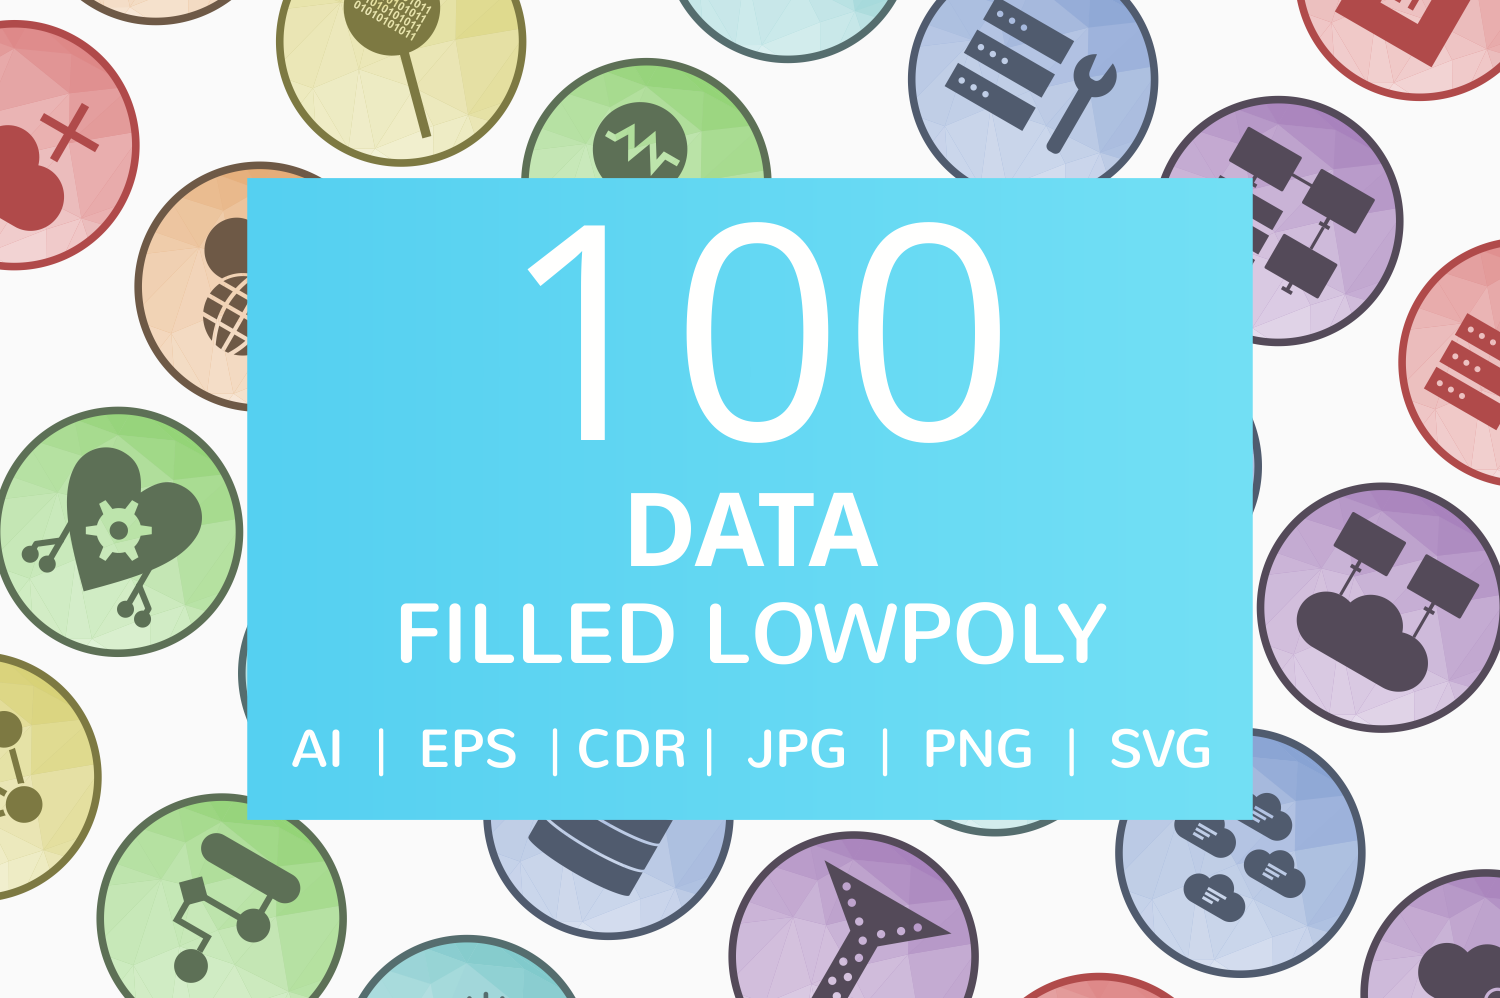 100 Data Filled Low Poly Icons example image 1